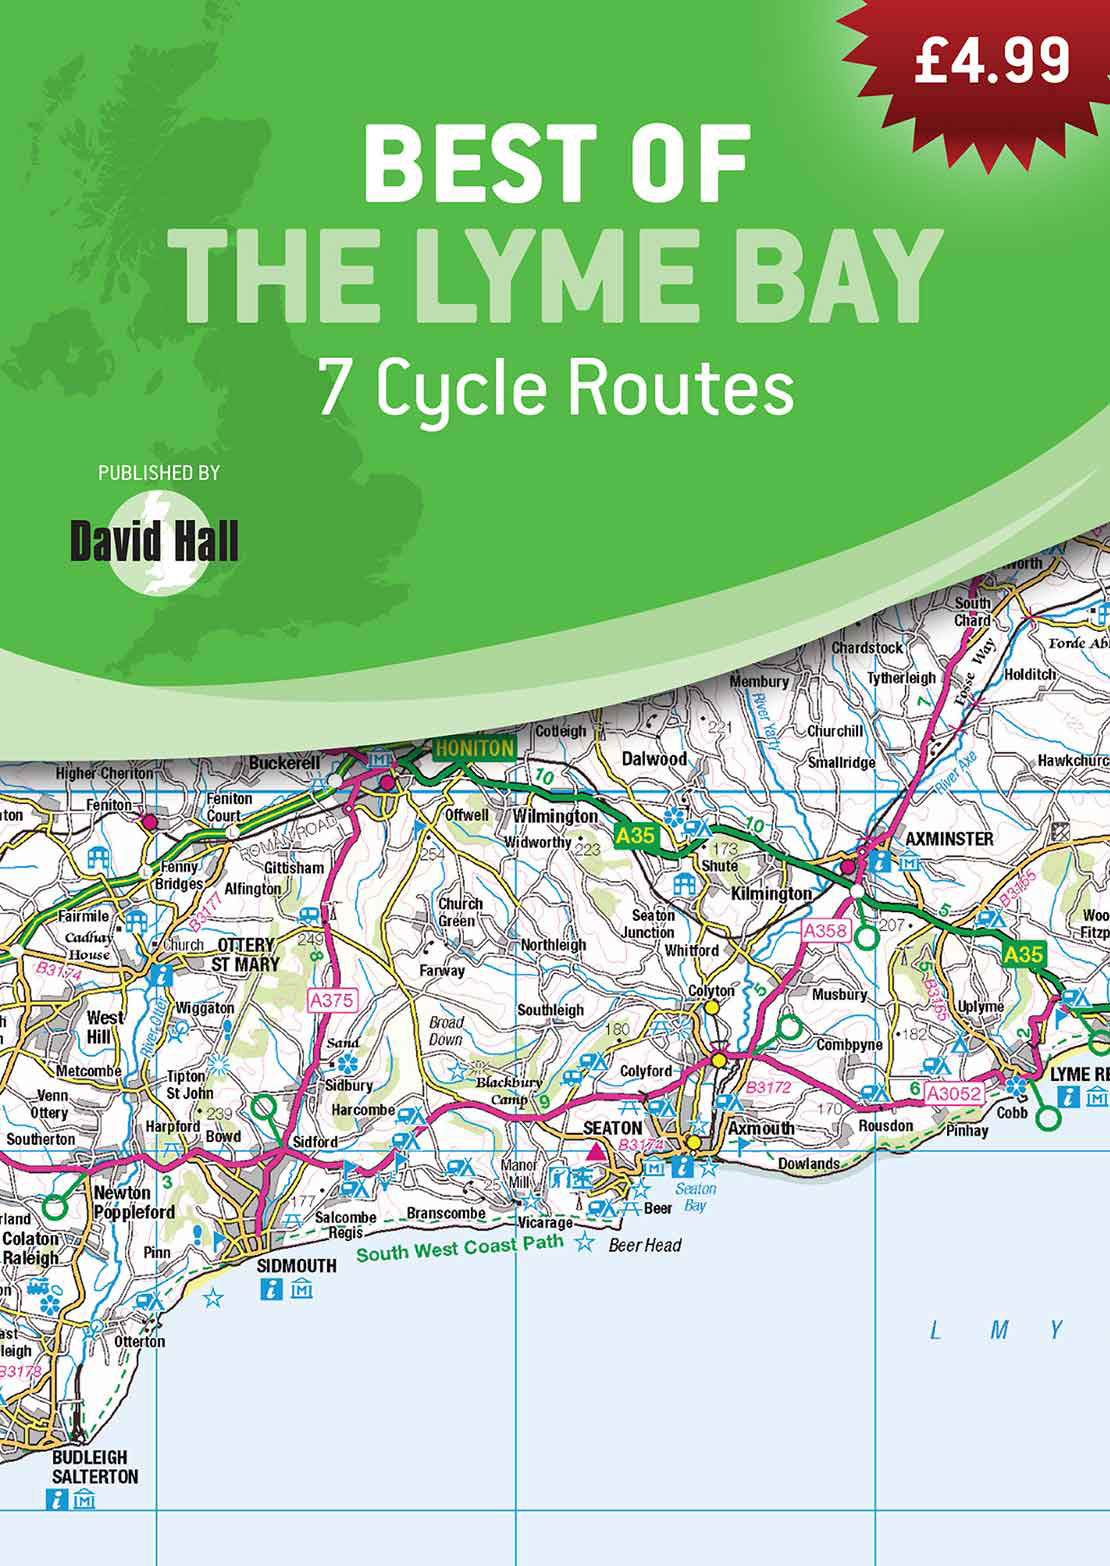 Best of the Lyme Bay - 10 Circular Pub Walks Book image